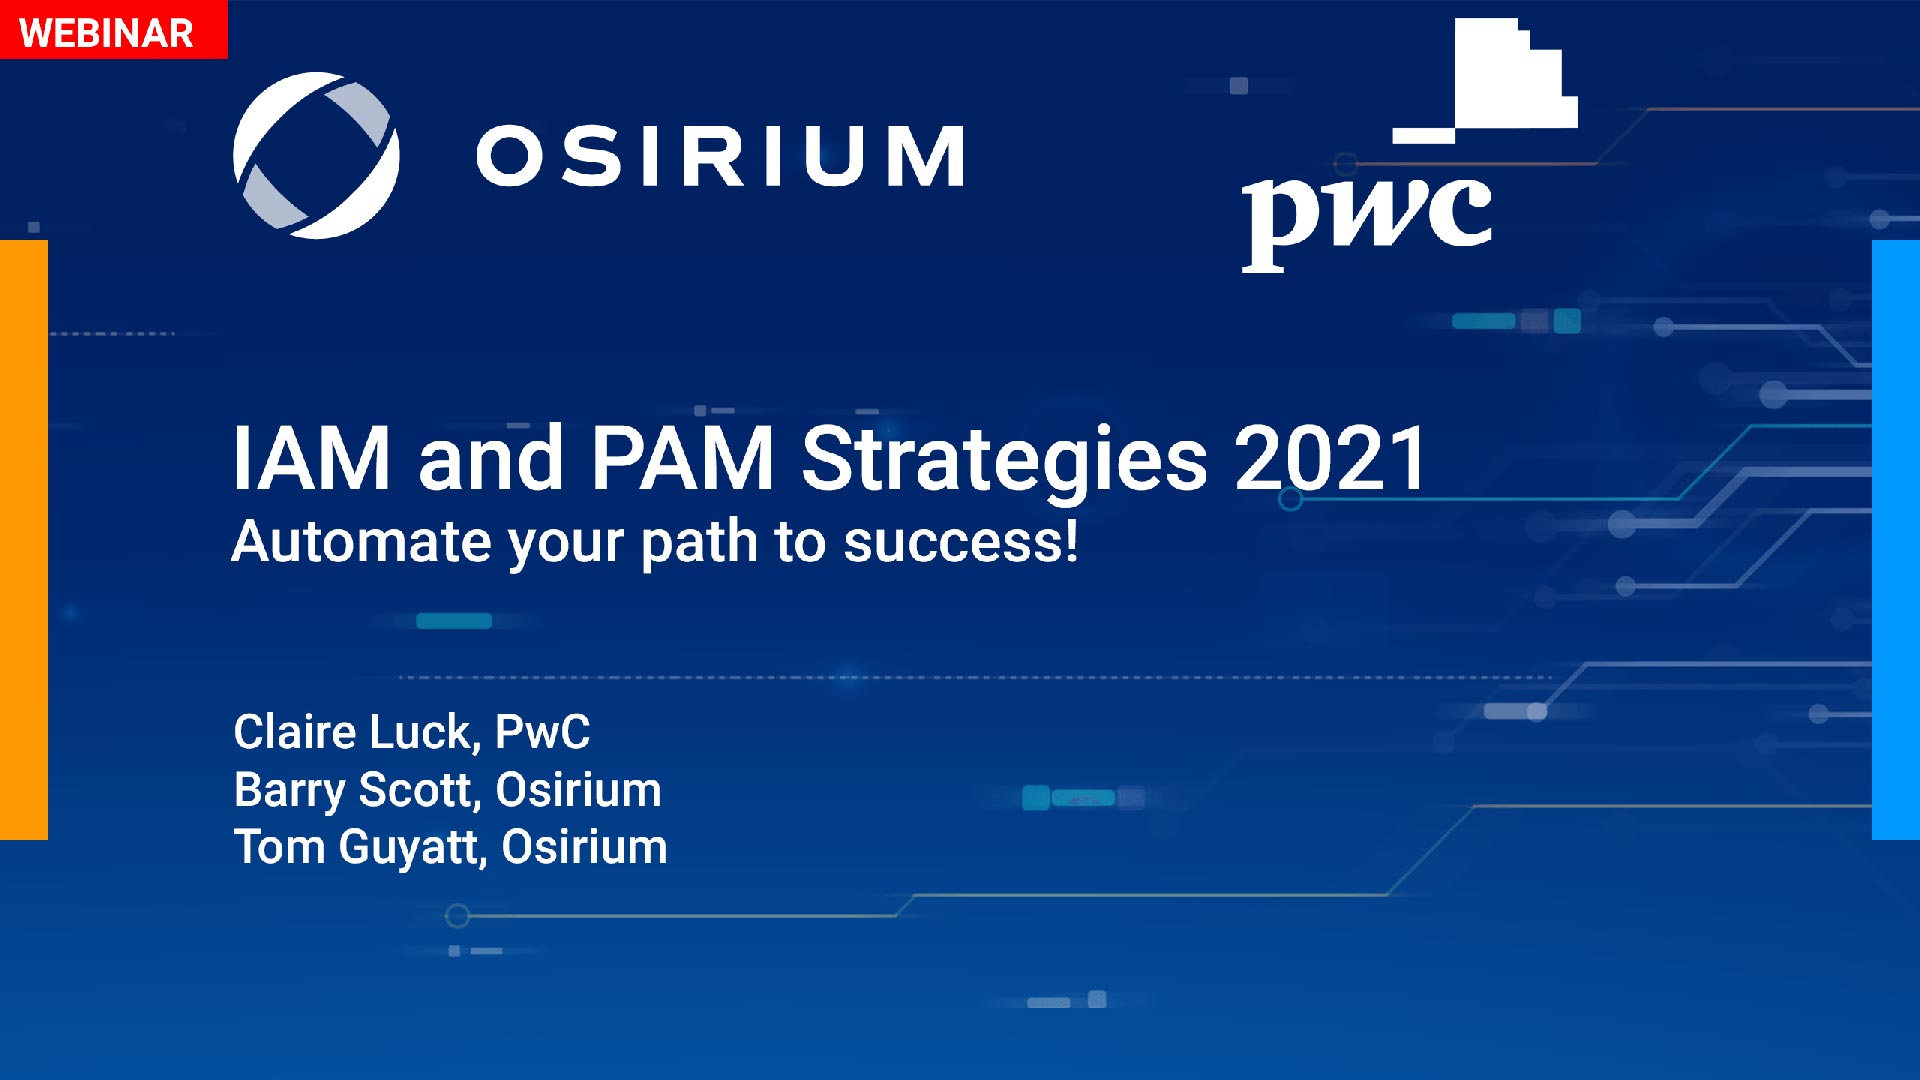 IAM and PAM Strategies for 2021